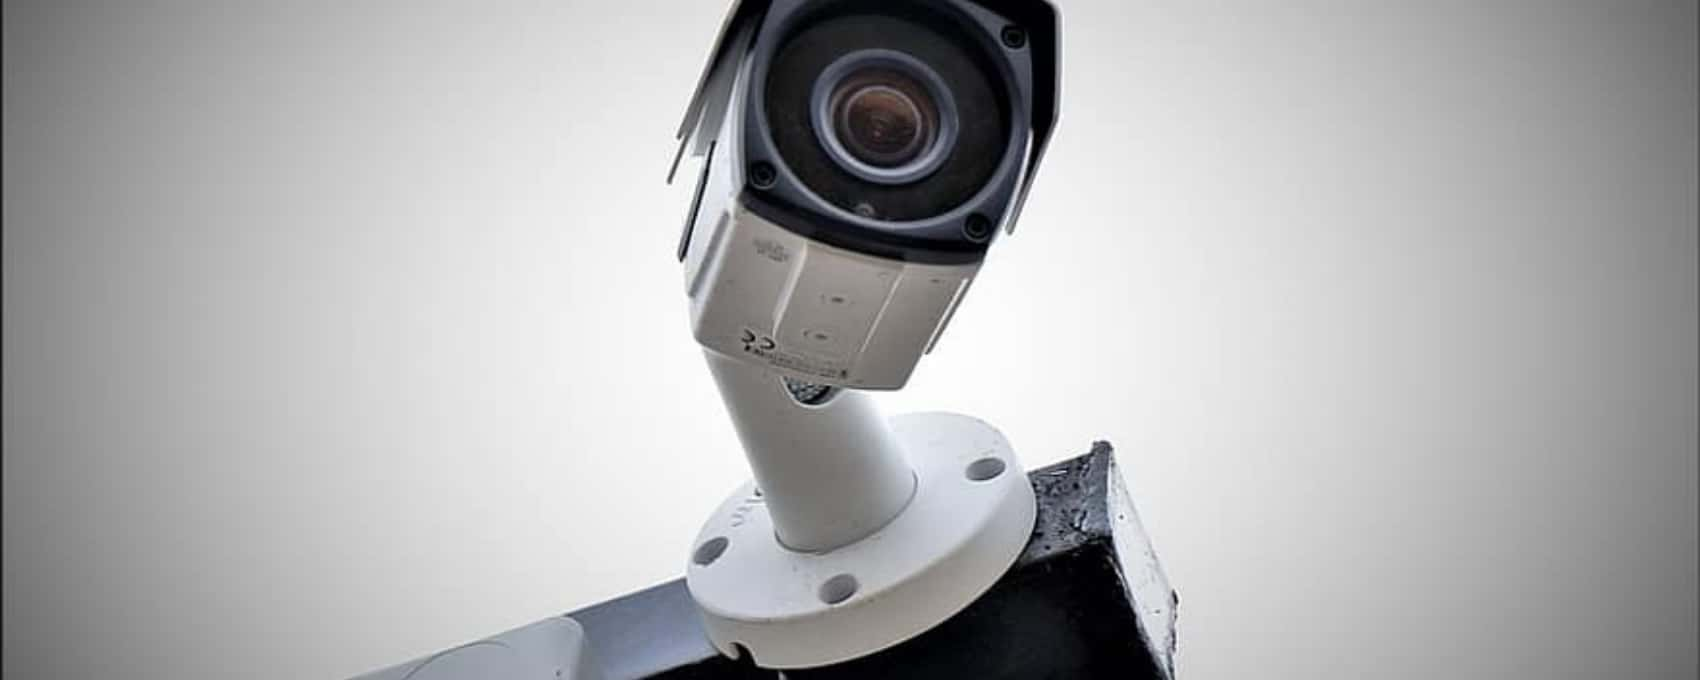 7 Types of Home Security Cameras That Will Help you Sleep at Night